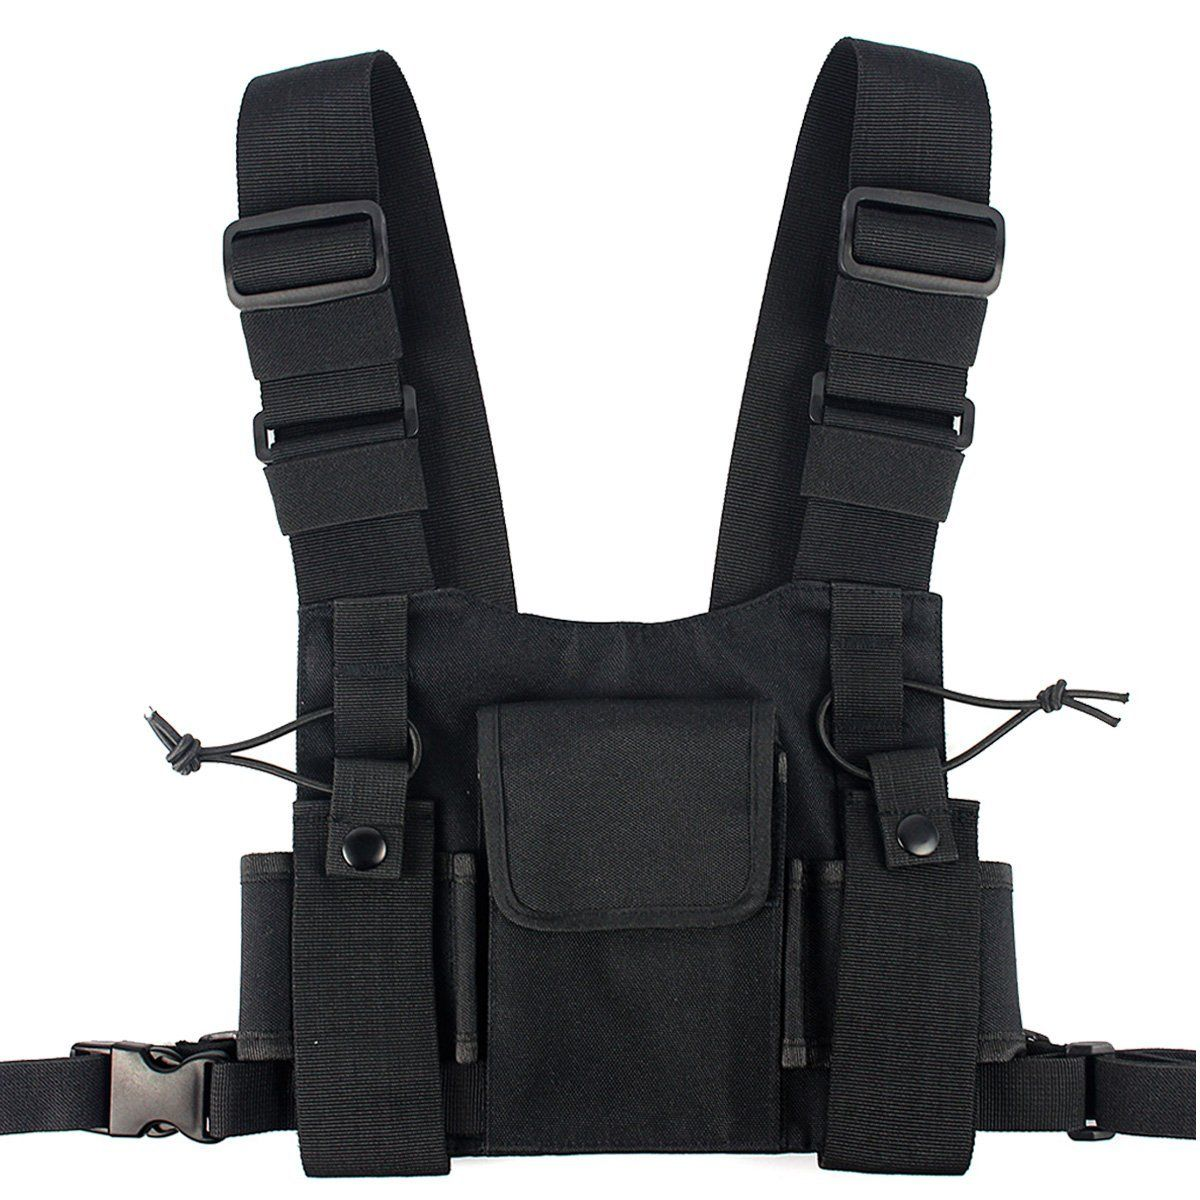 1x Tactical Harness Chest Rig Bag Women Hip-Hop Radio W//Two Pockets Fanny Pack